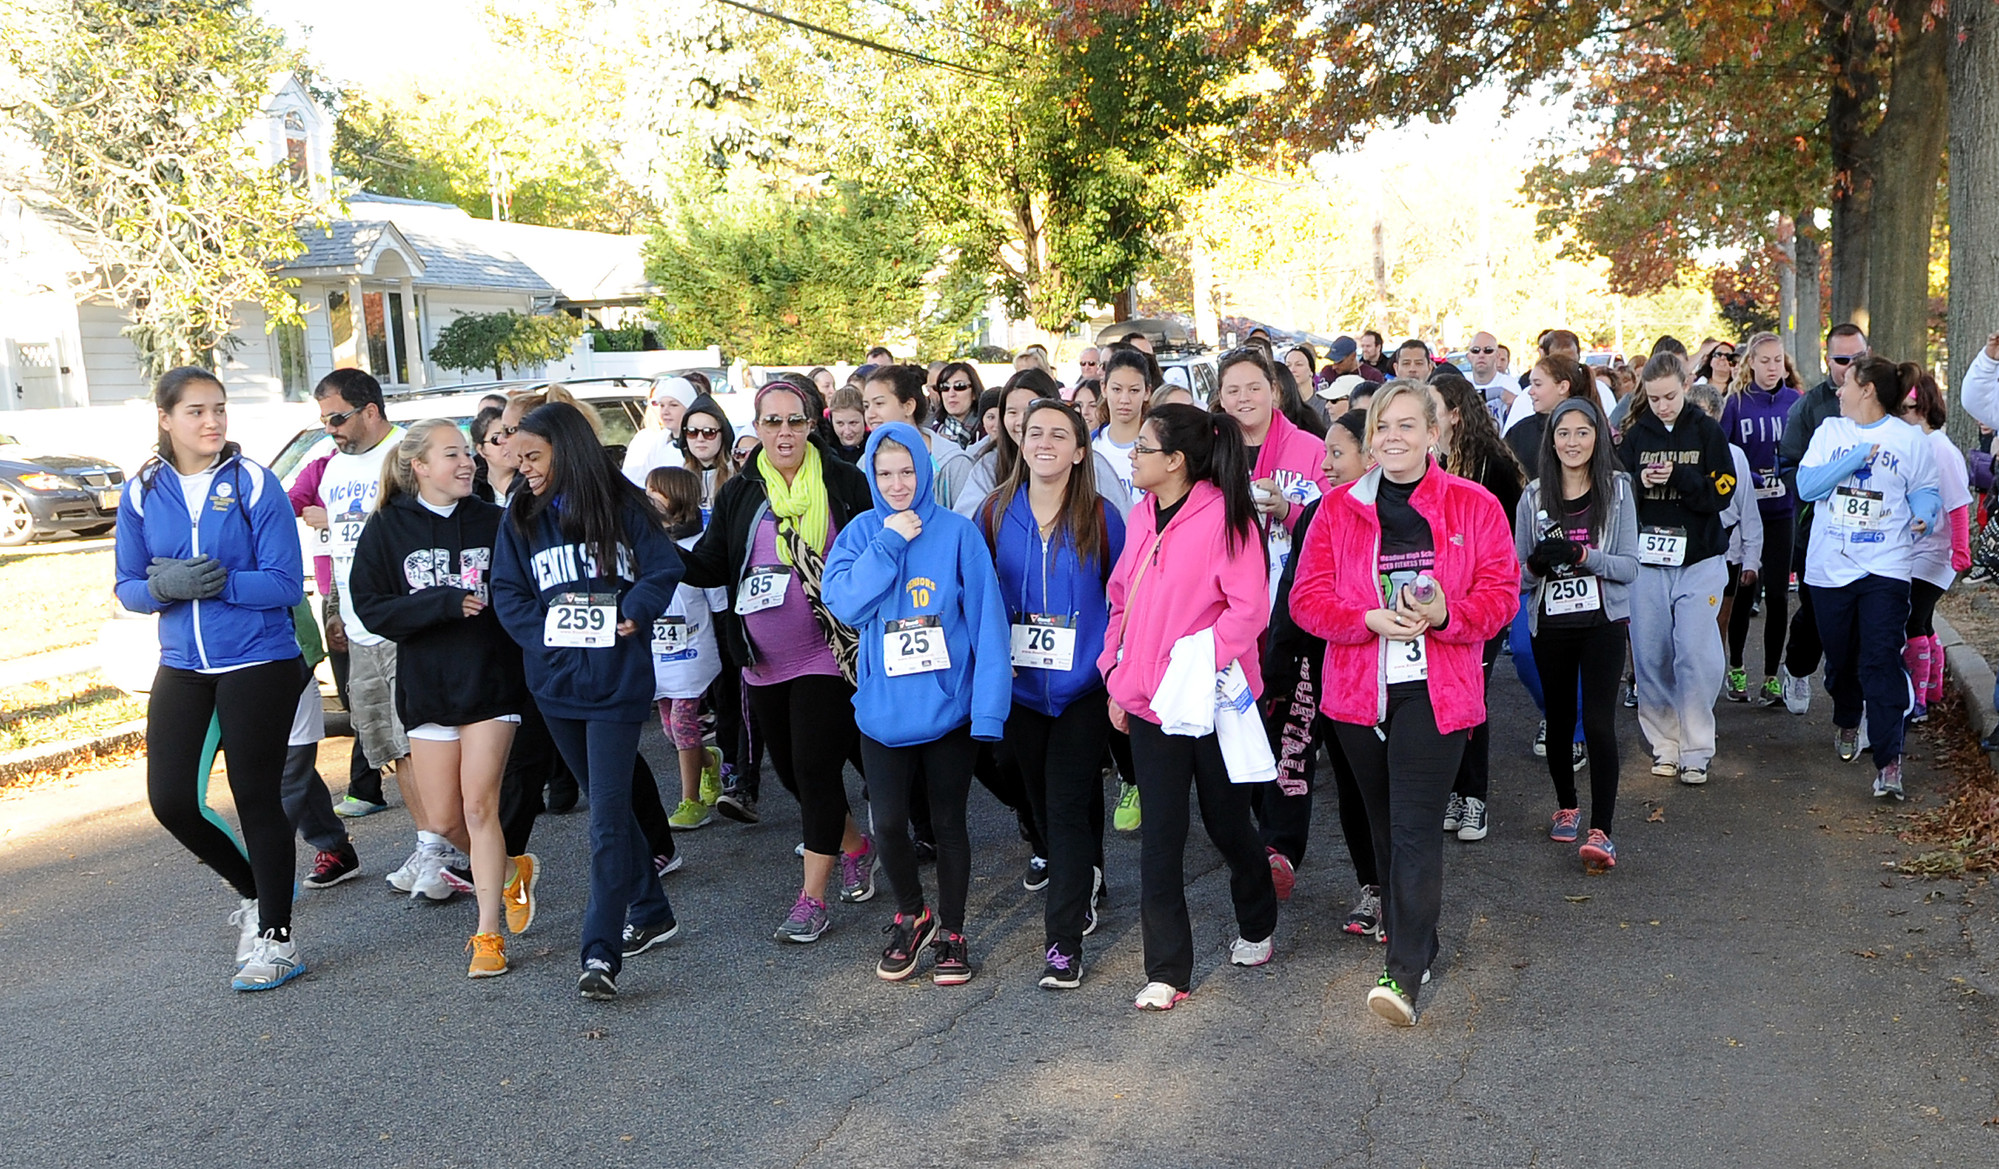 Many of the race participants preferred to enjoy the brisk, autumn scenery along the 5K path on Sunday.